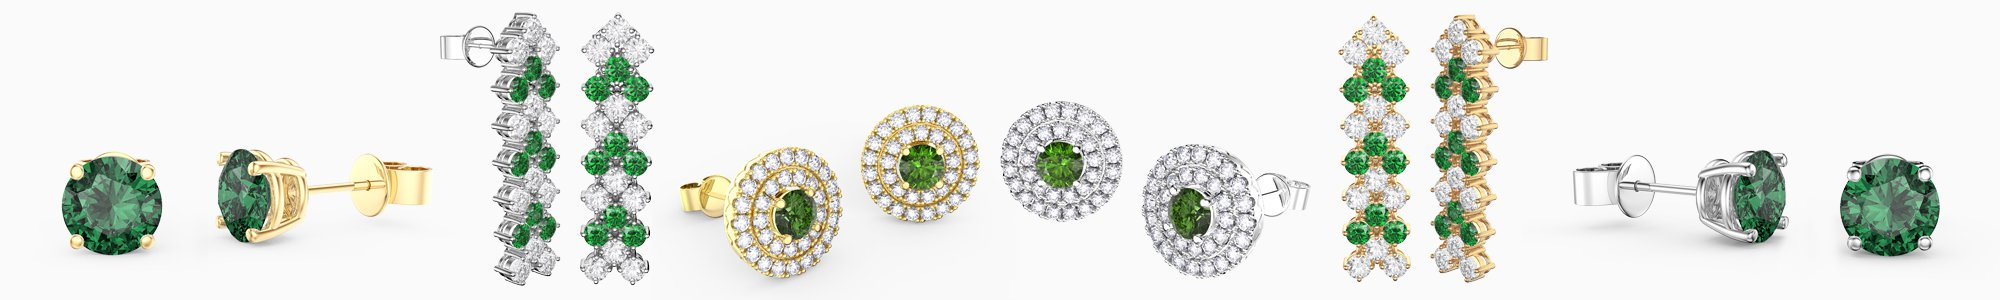 Shop Emerald Earrings by Jian London. Buy direct and save from our wide selection of Emerald Earrings at the Jian London jewellery Store. Free UK Delivery